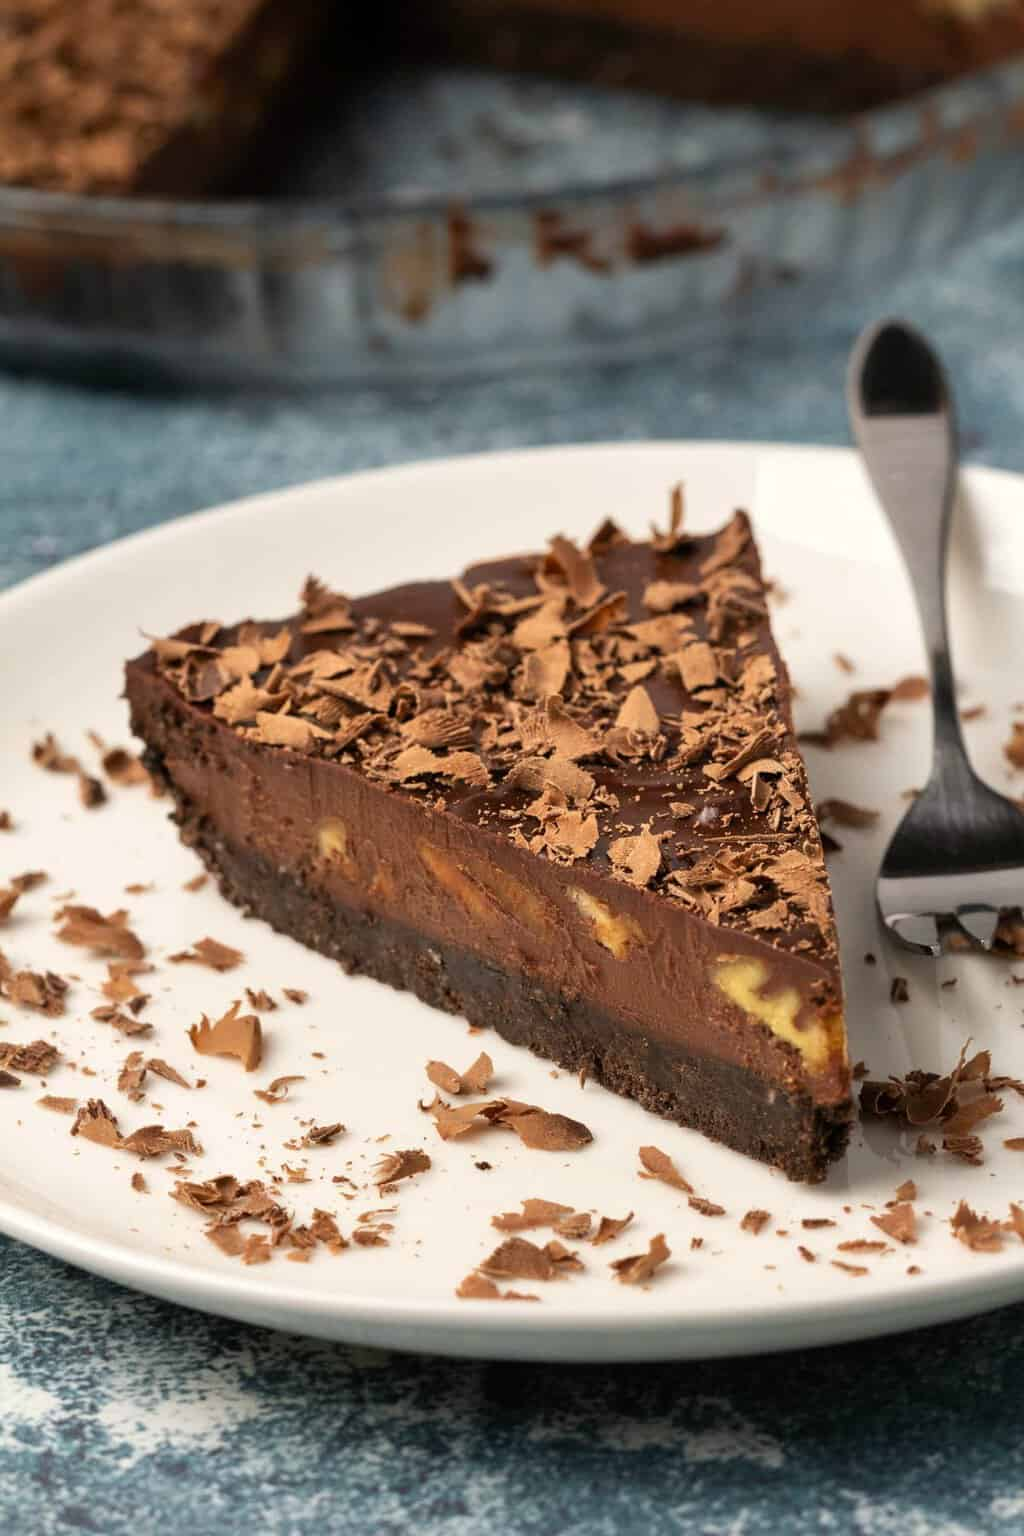 Slice of vegan chocolate tart on a white plate with a cake fork.